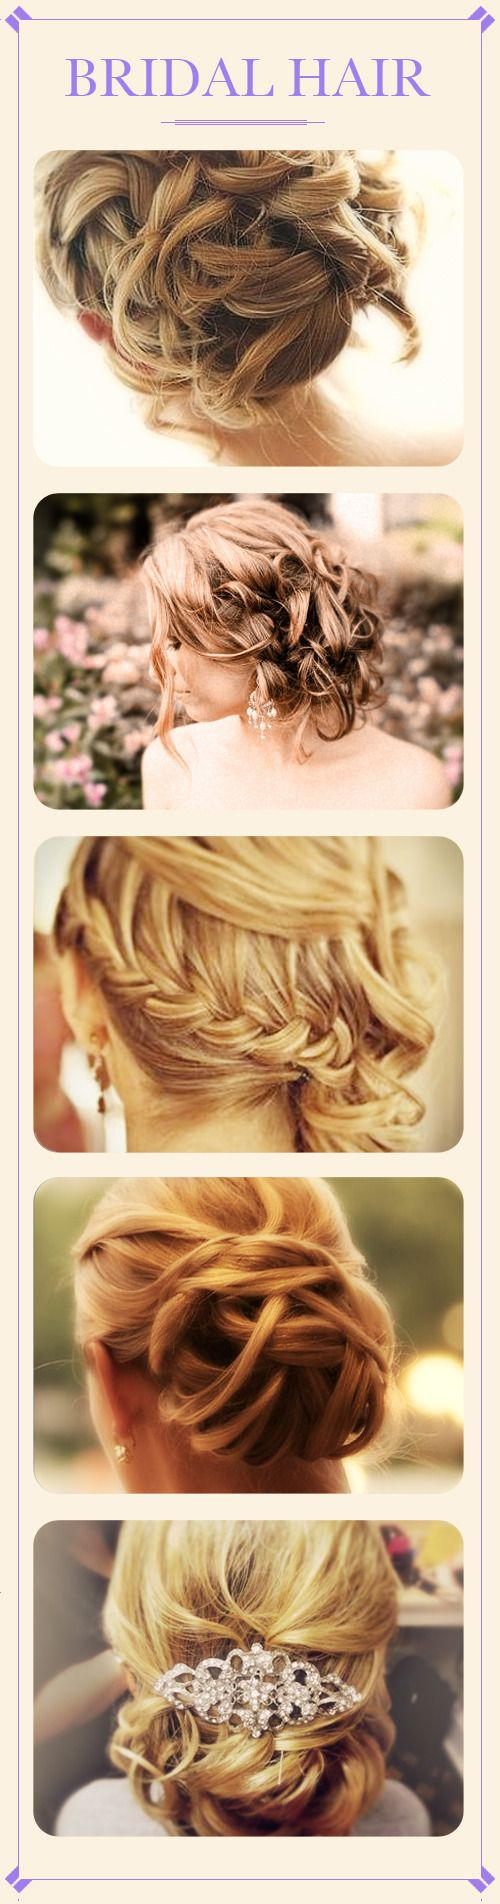 Some Favorite Bridal Hair Pretty Hair Pinterest Bridal hair